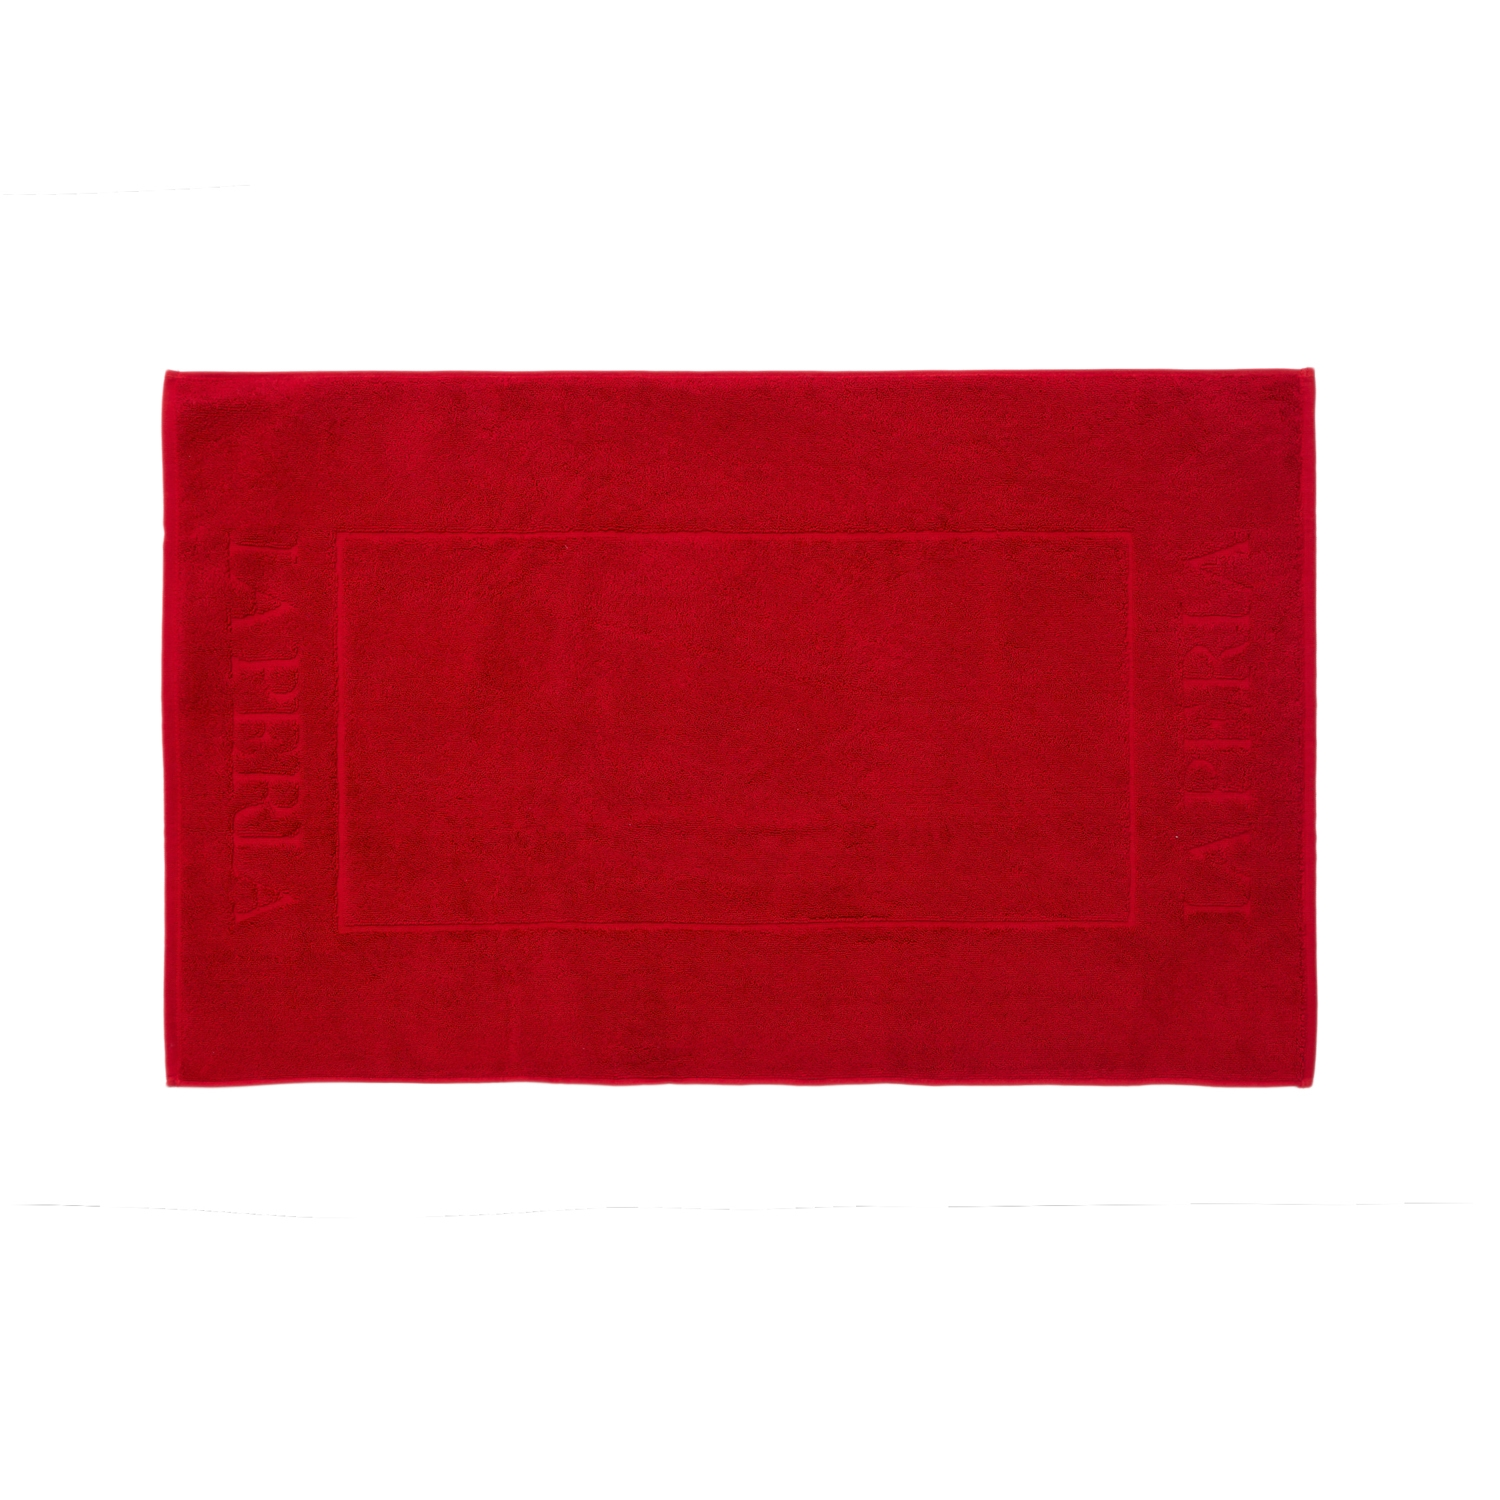 Bathmat NERVURES-60x100-RED